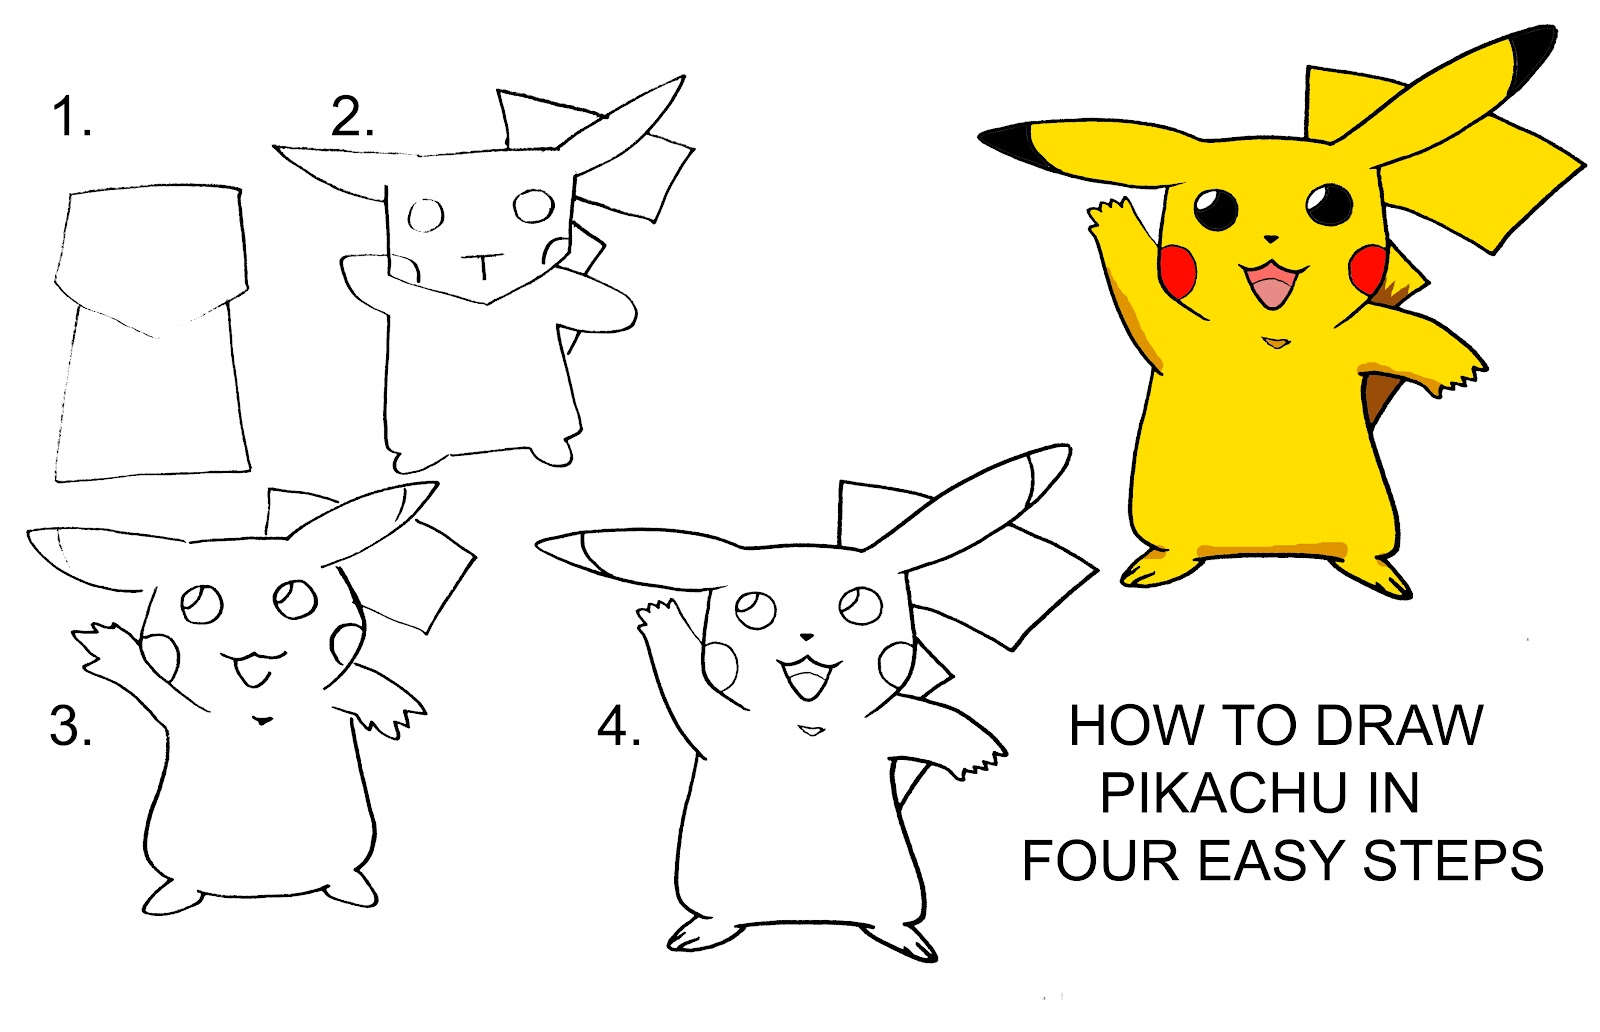 1600x1032 How To Draw Pikachu Step By Step Daryl Hobson Artwork